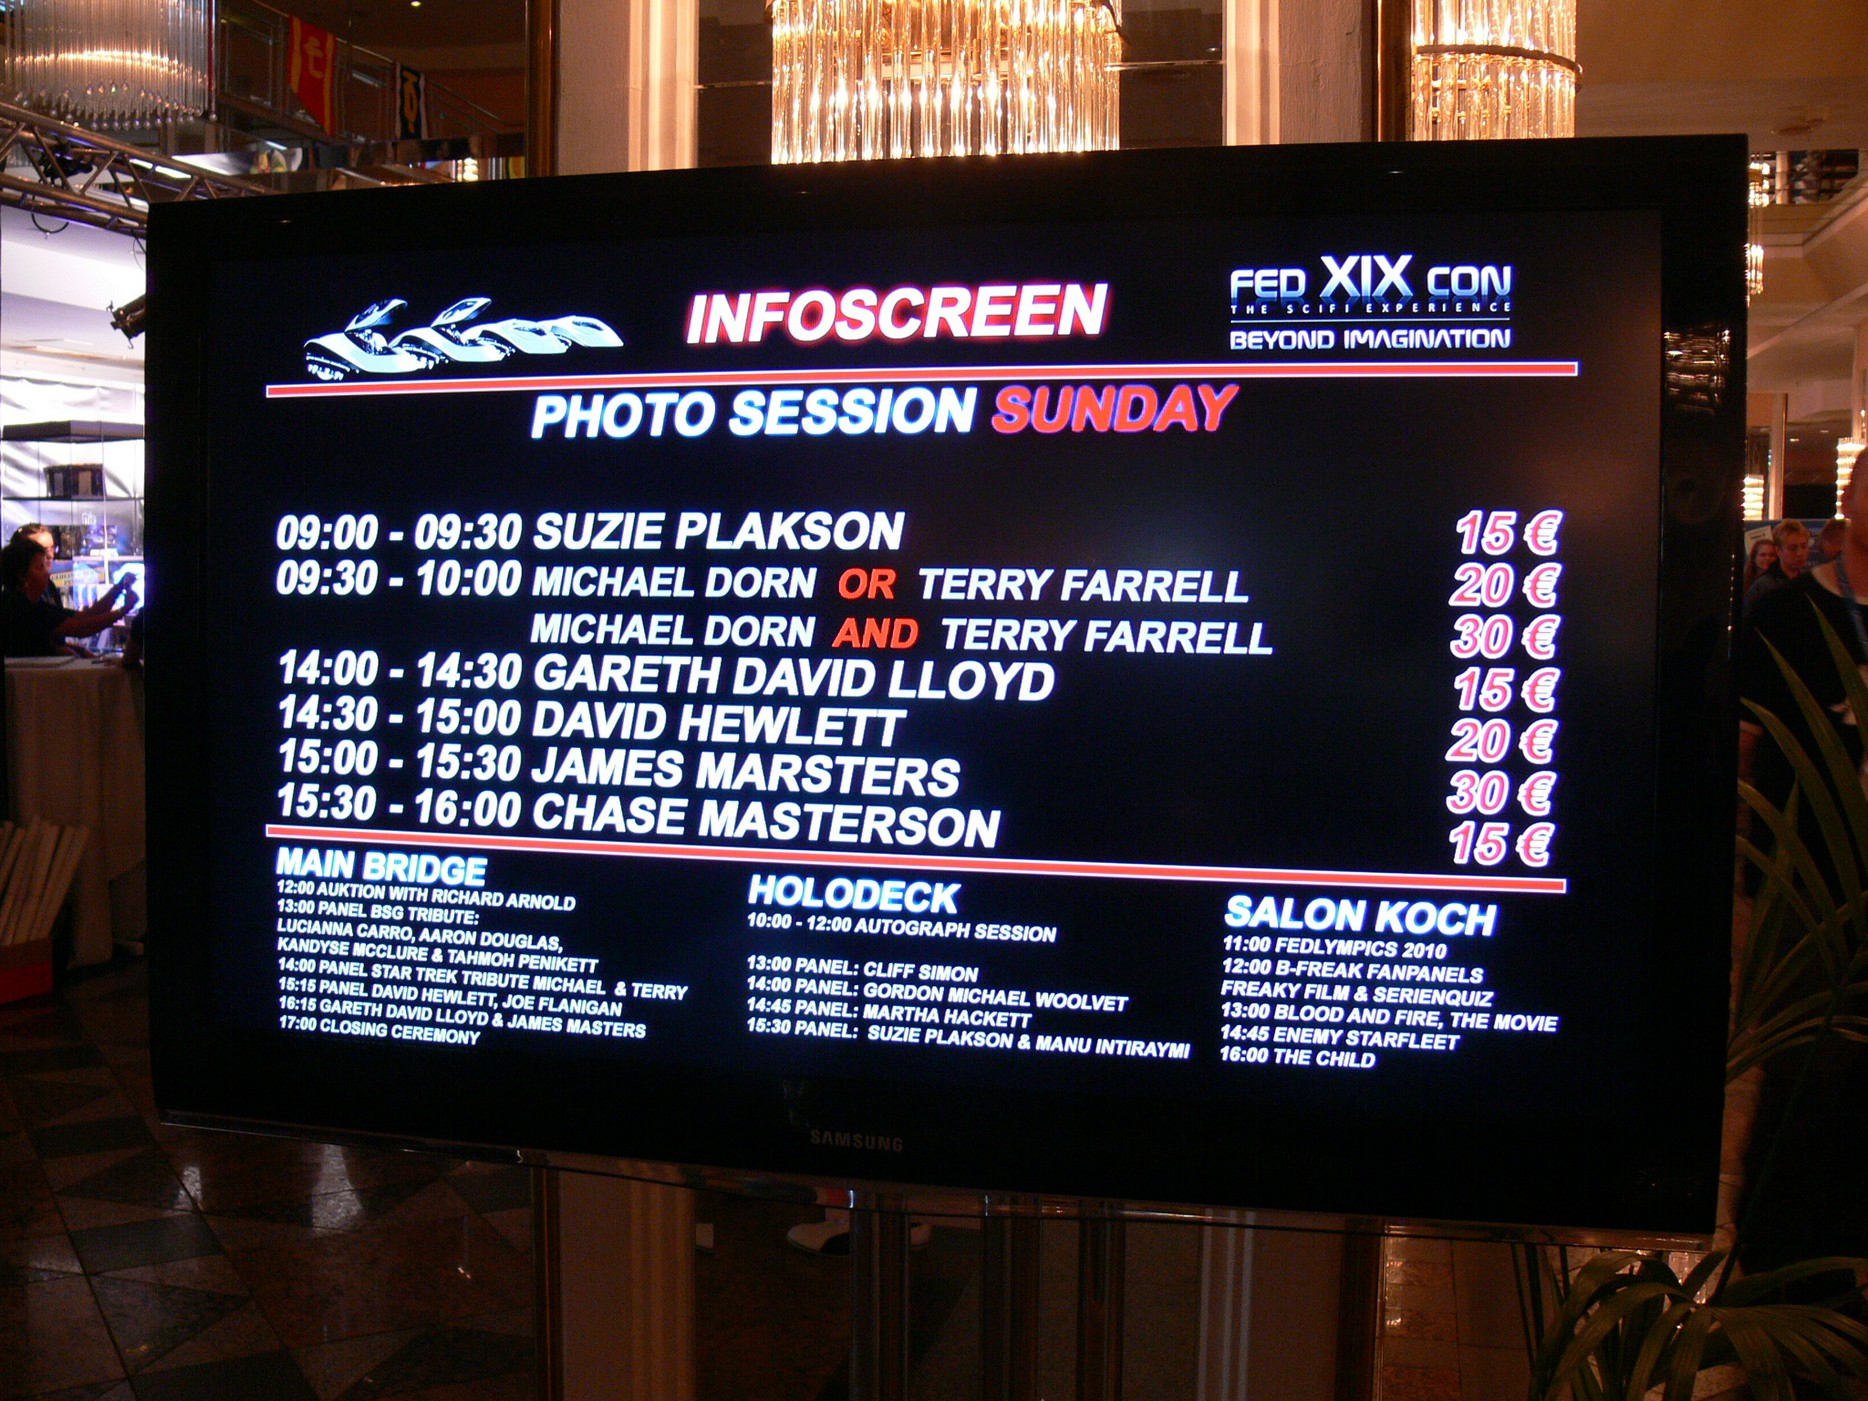 The Infoscreen listing the events